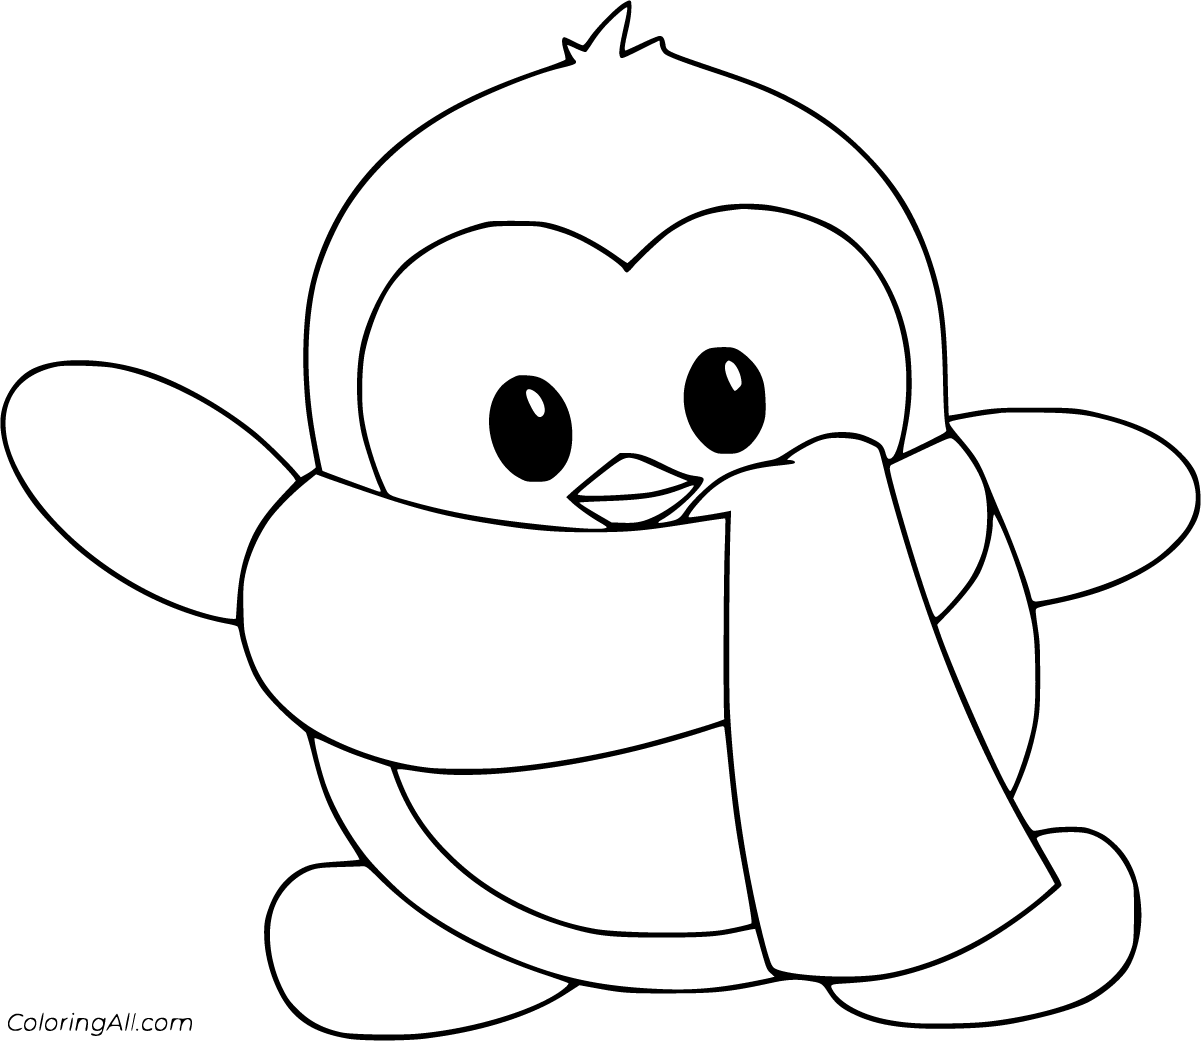 coloring page of penguin penguin coloring pages coloringall of page penguin coloring